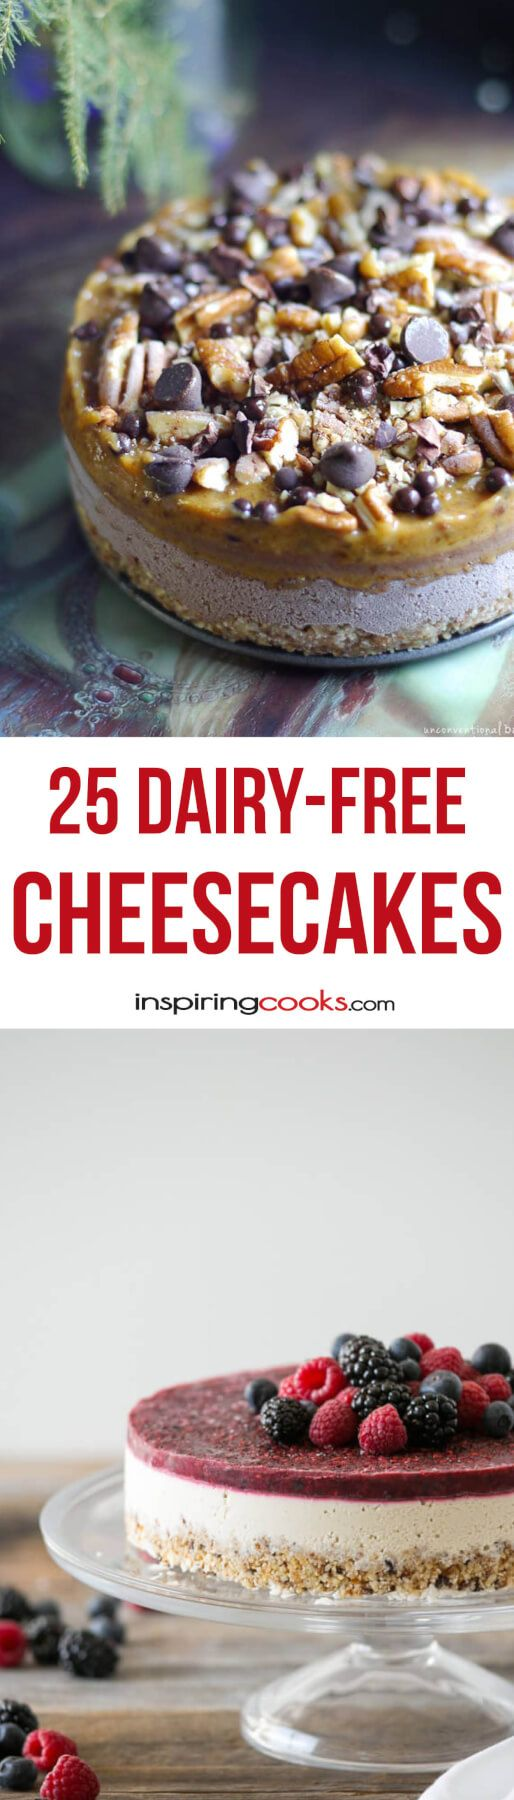 25 of The Best Ever Dairy-Free Cheese Cake Recipes on the planet. You won't have to do without cheesecake now if you have to eat dairy-free. Enjoy!